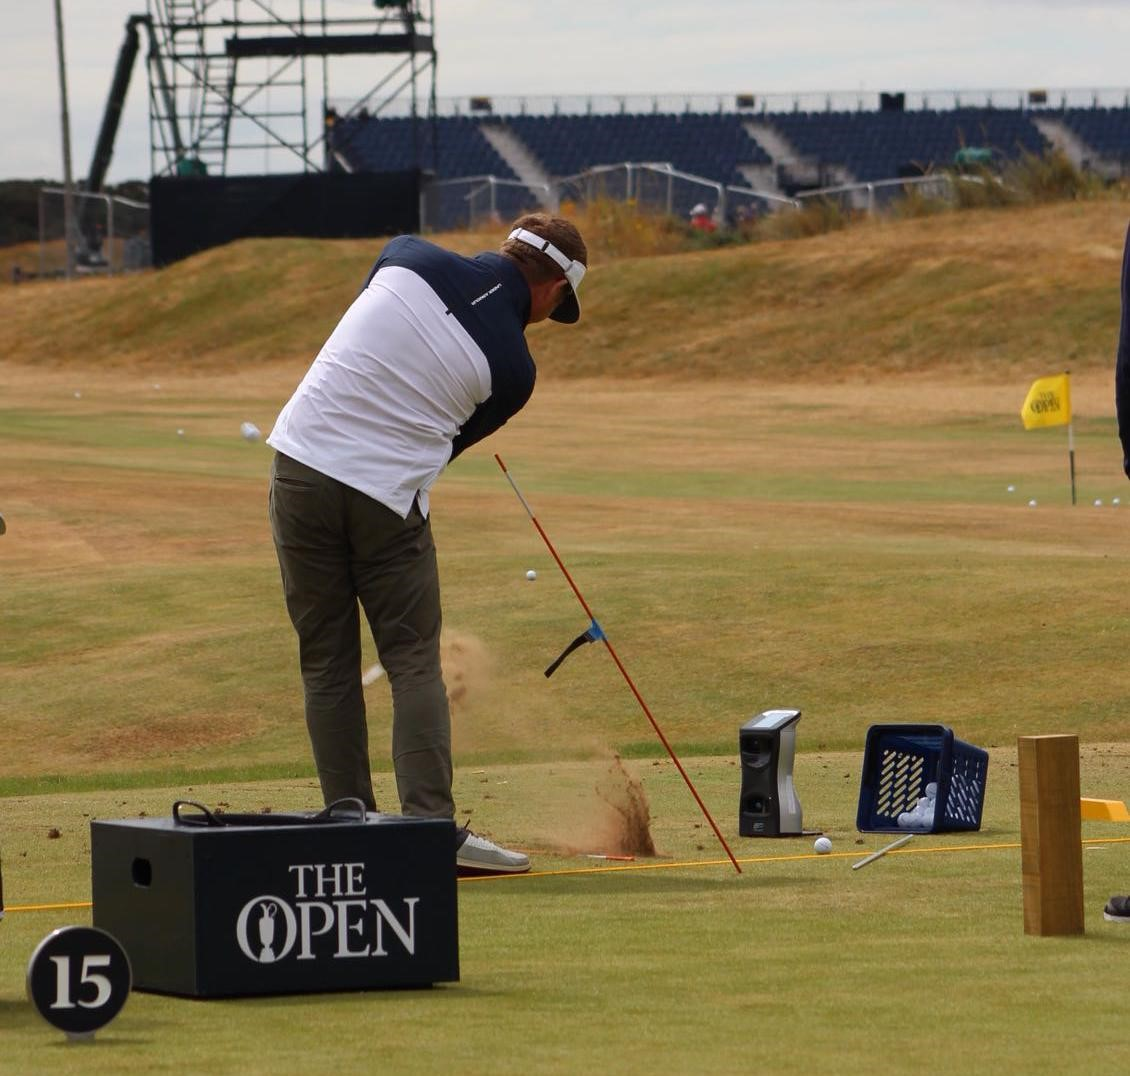 thomas curtis practicing at the open